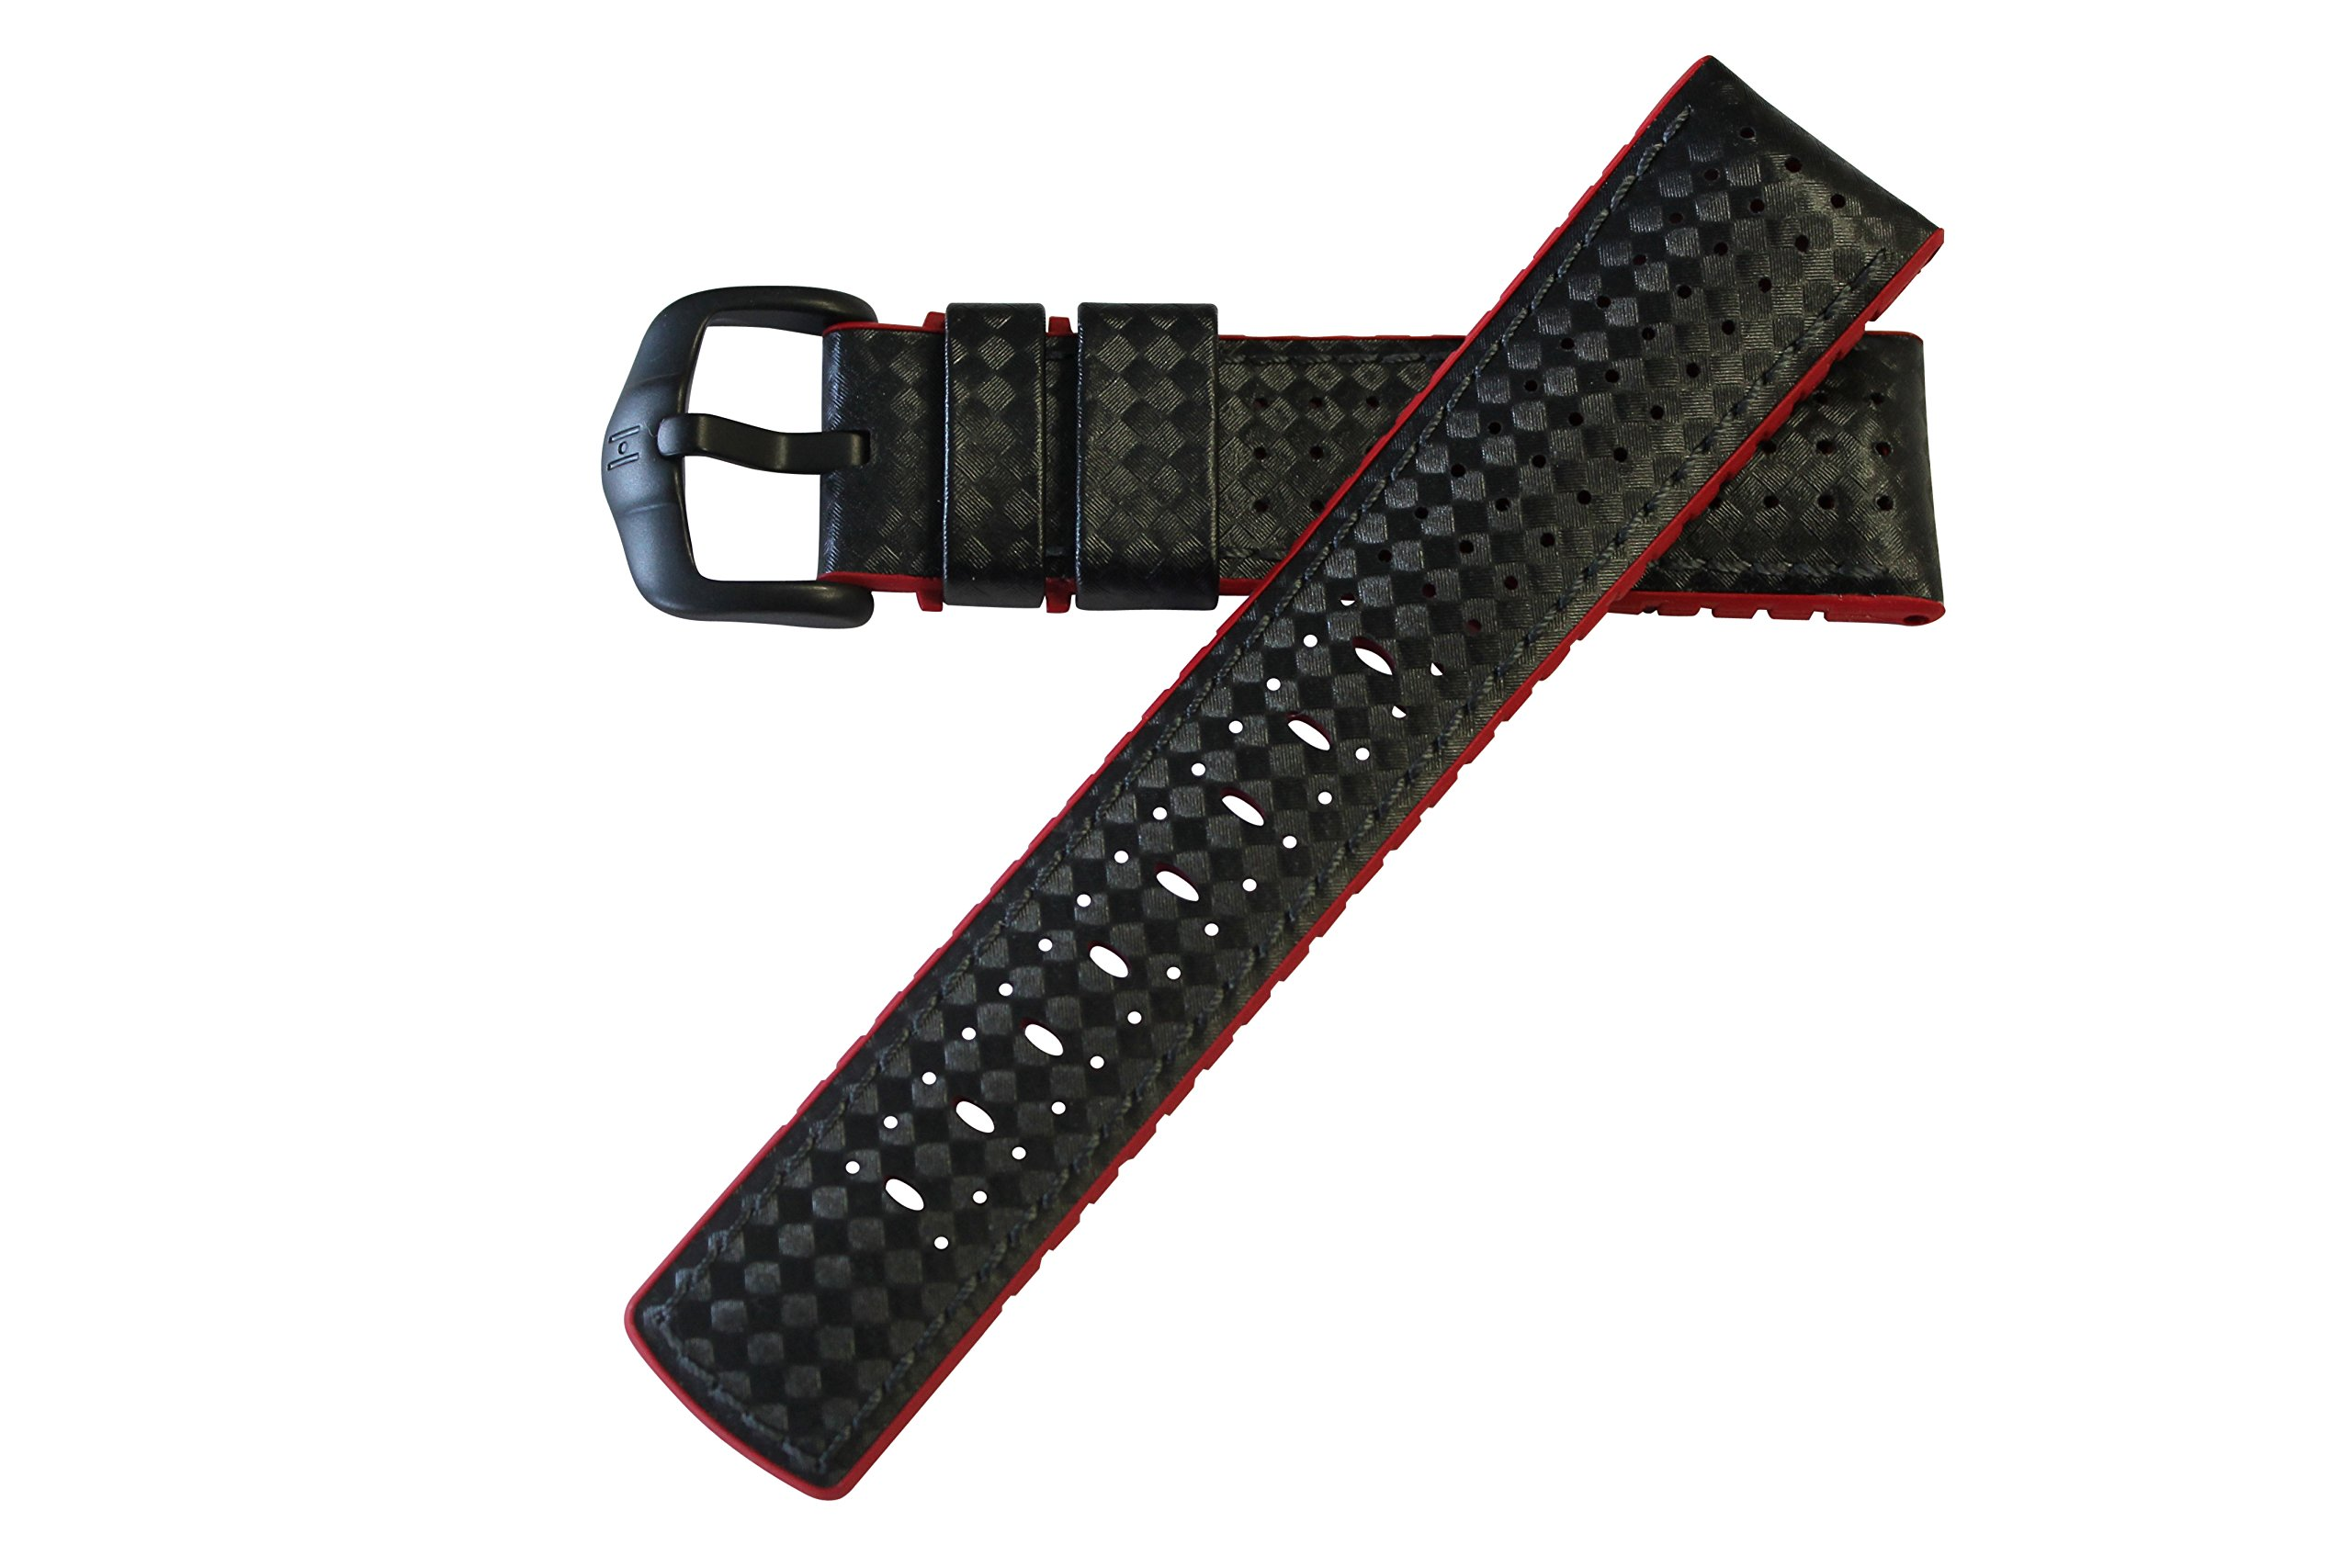 Hirsch Performance ARYTON Carbon Fiber Leather Sport Watch Strap Rubber Lining Black w/Red Lining 20mm